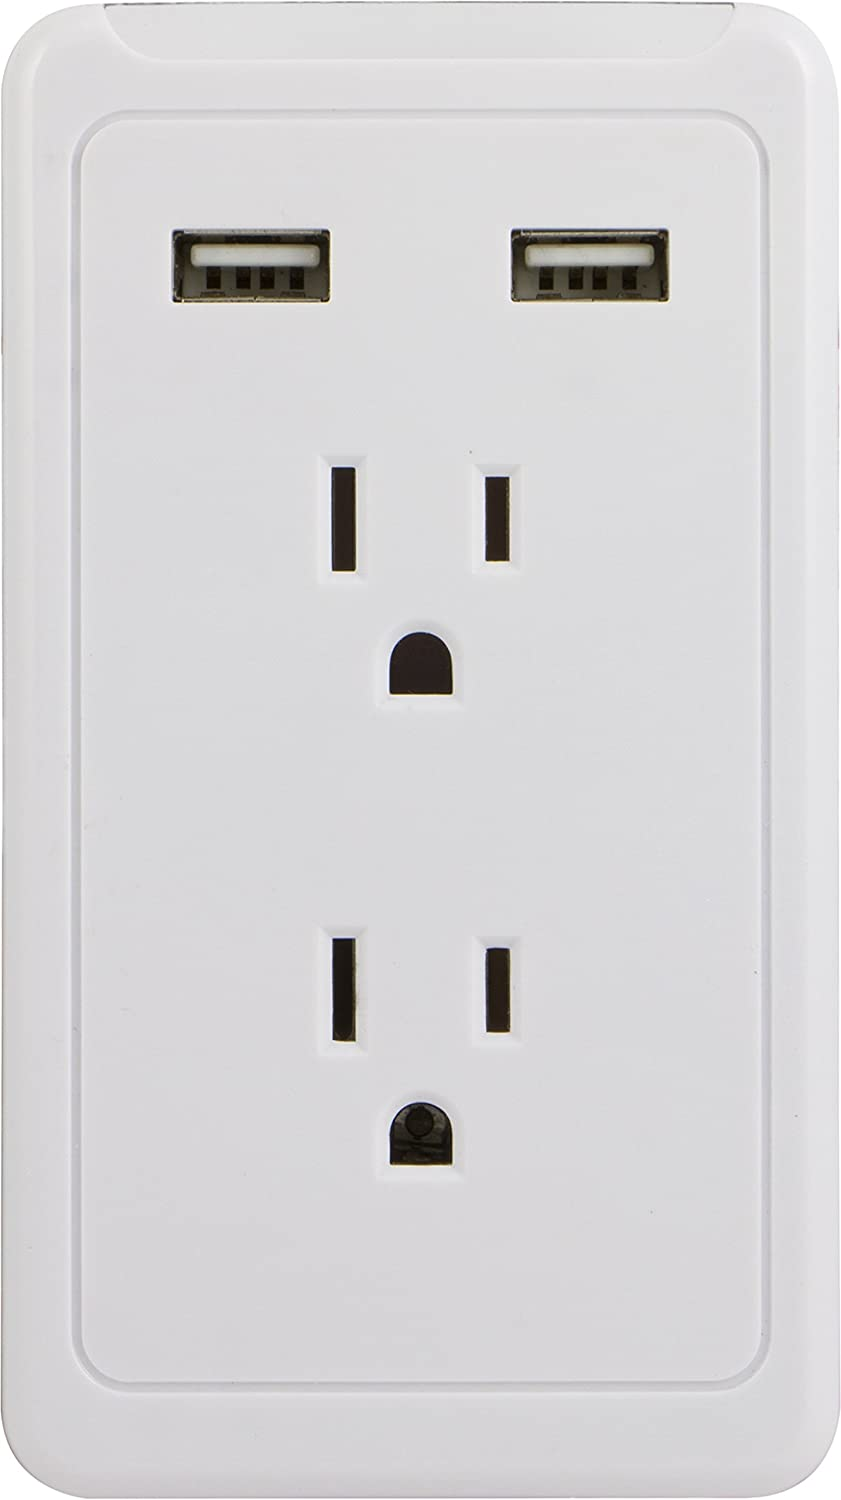 GE Surge Protector Charging Station, Wall Mount Adapter, Power Tap with Phone Holder Shelf, 2 Grounded Outlets, 2 USB Ports, LED Charging Status Indicator, 2.1A Fast Charge, 450 Joules, White, 13465